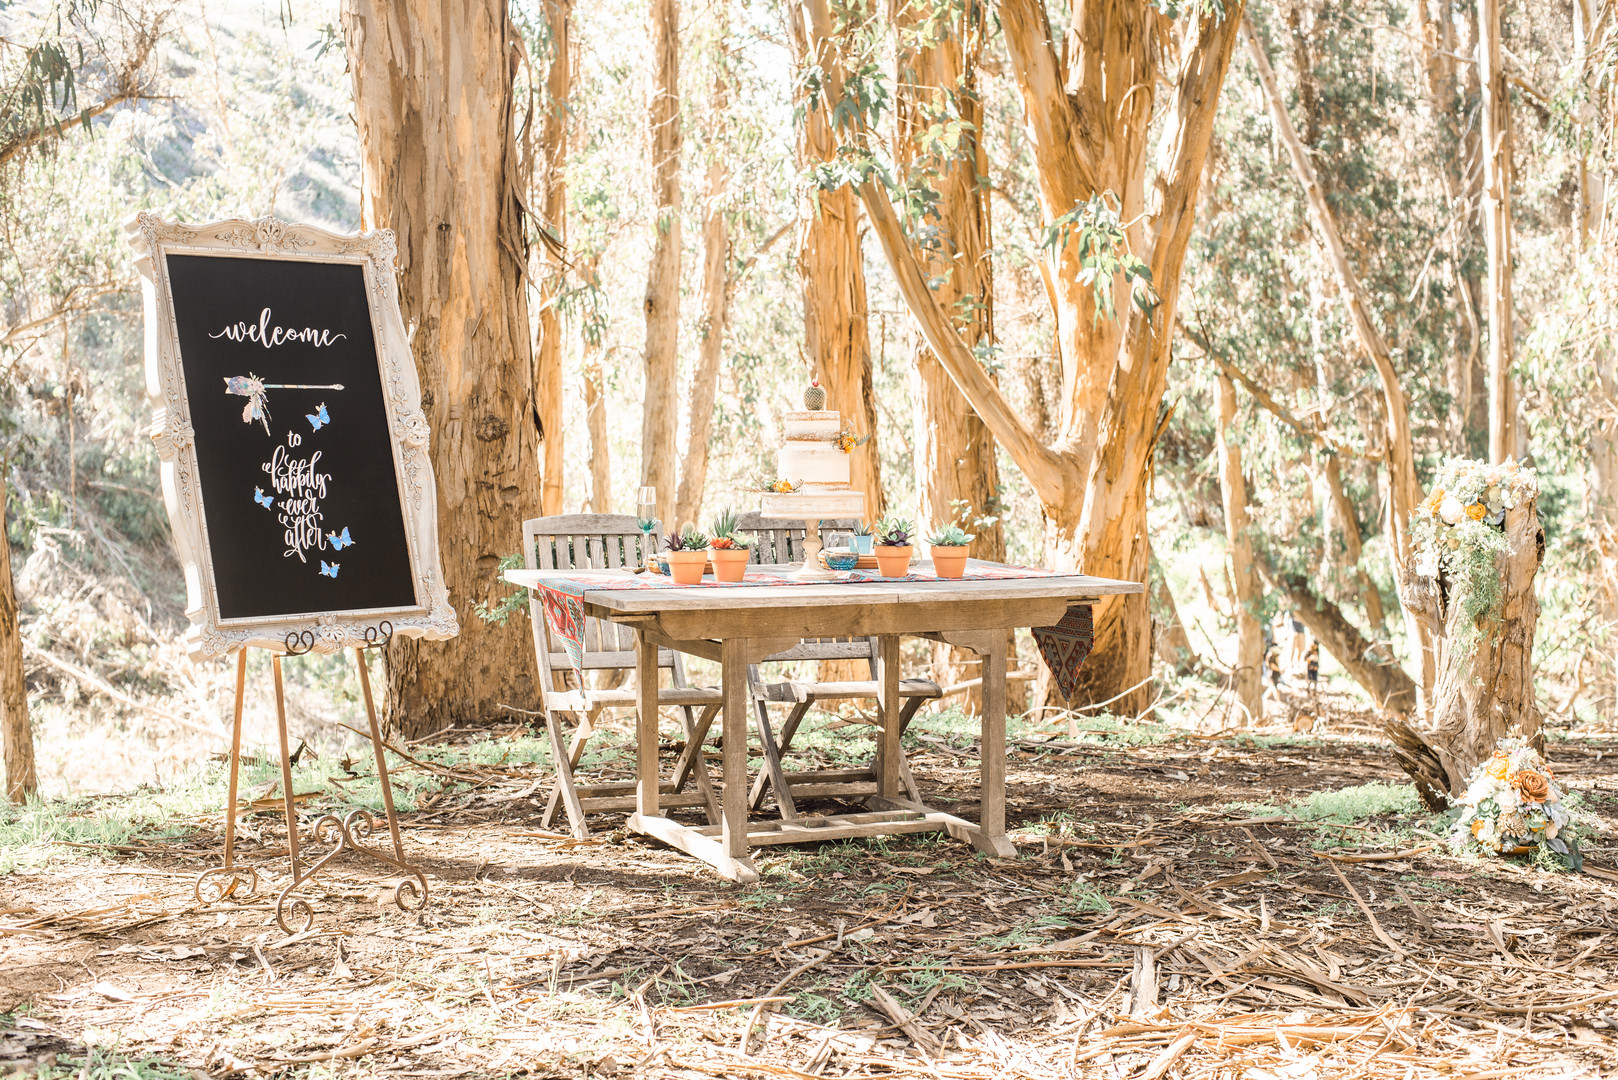 www.santabarbarawedding.com   Staci and Michael Photography   Montana de Oro State Park   EverAfter Wood Floral   Pier 1 Imports   The Blue Farmhouse   Wedding table decor